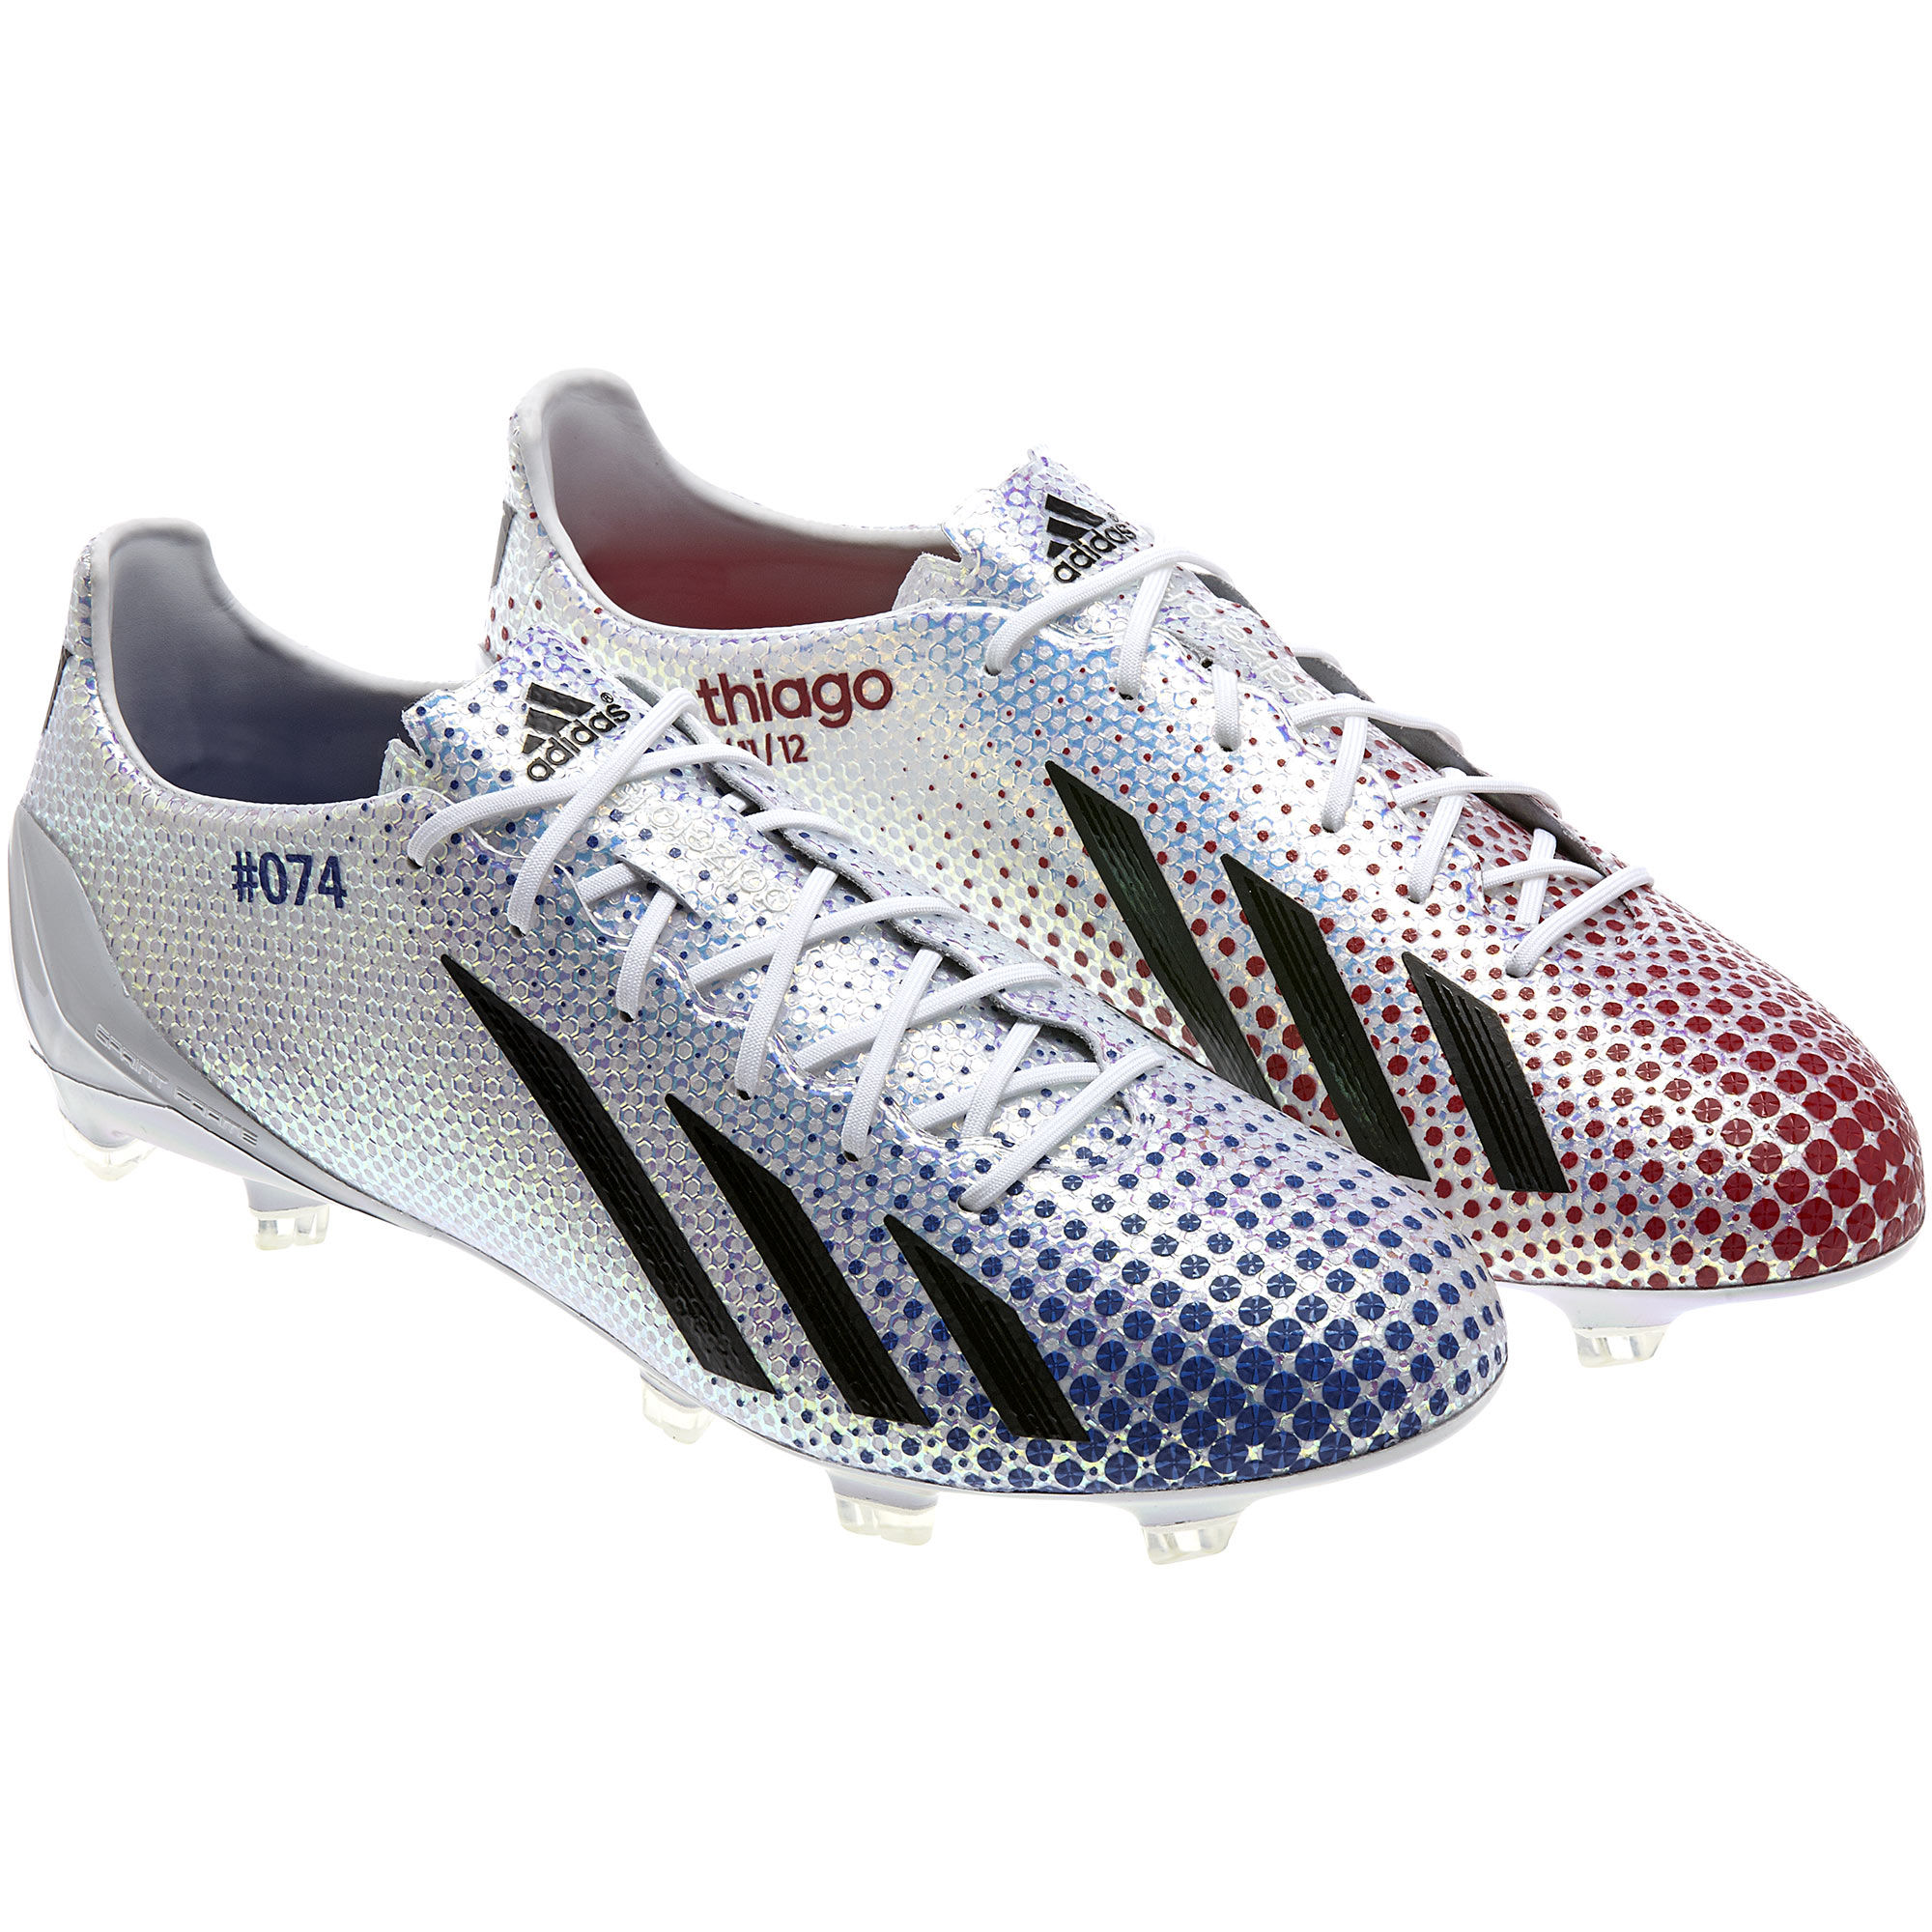 adidas adizero f50 trx fg messi 370 boots equipment. Black Bedroom Furniture Sets. Home Design Ideas